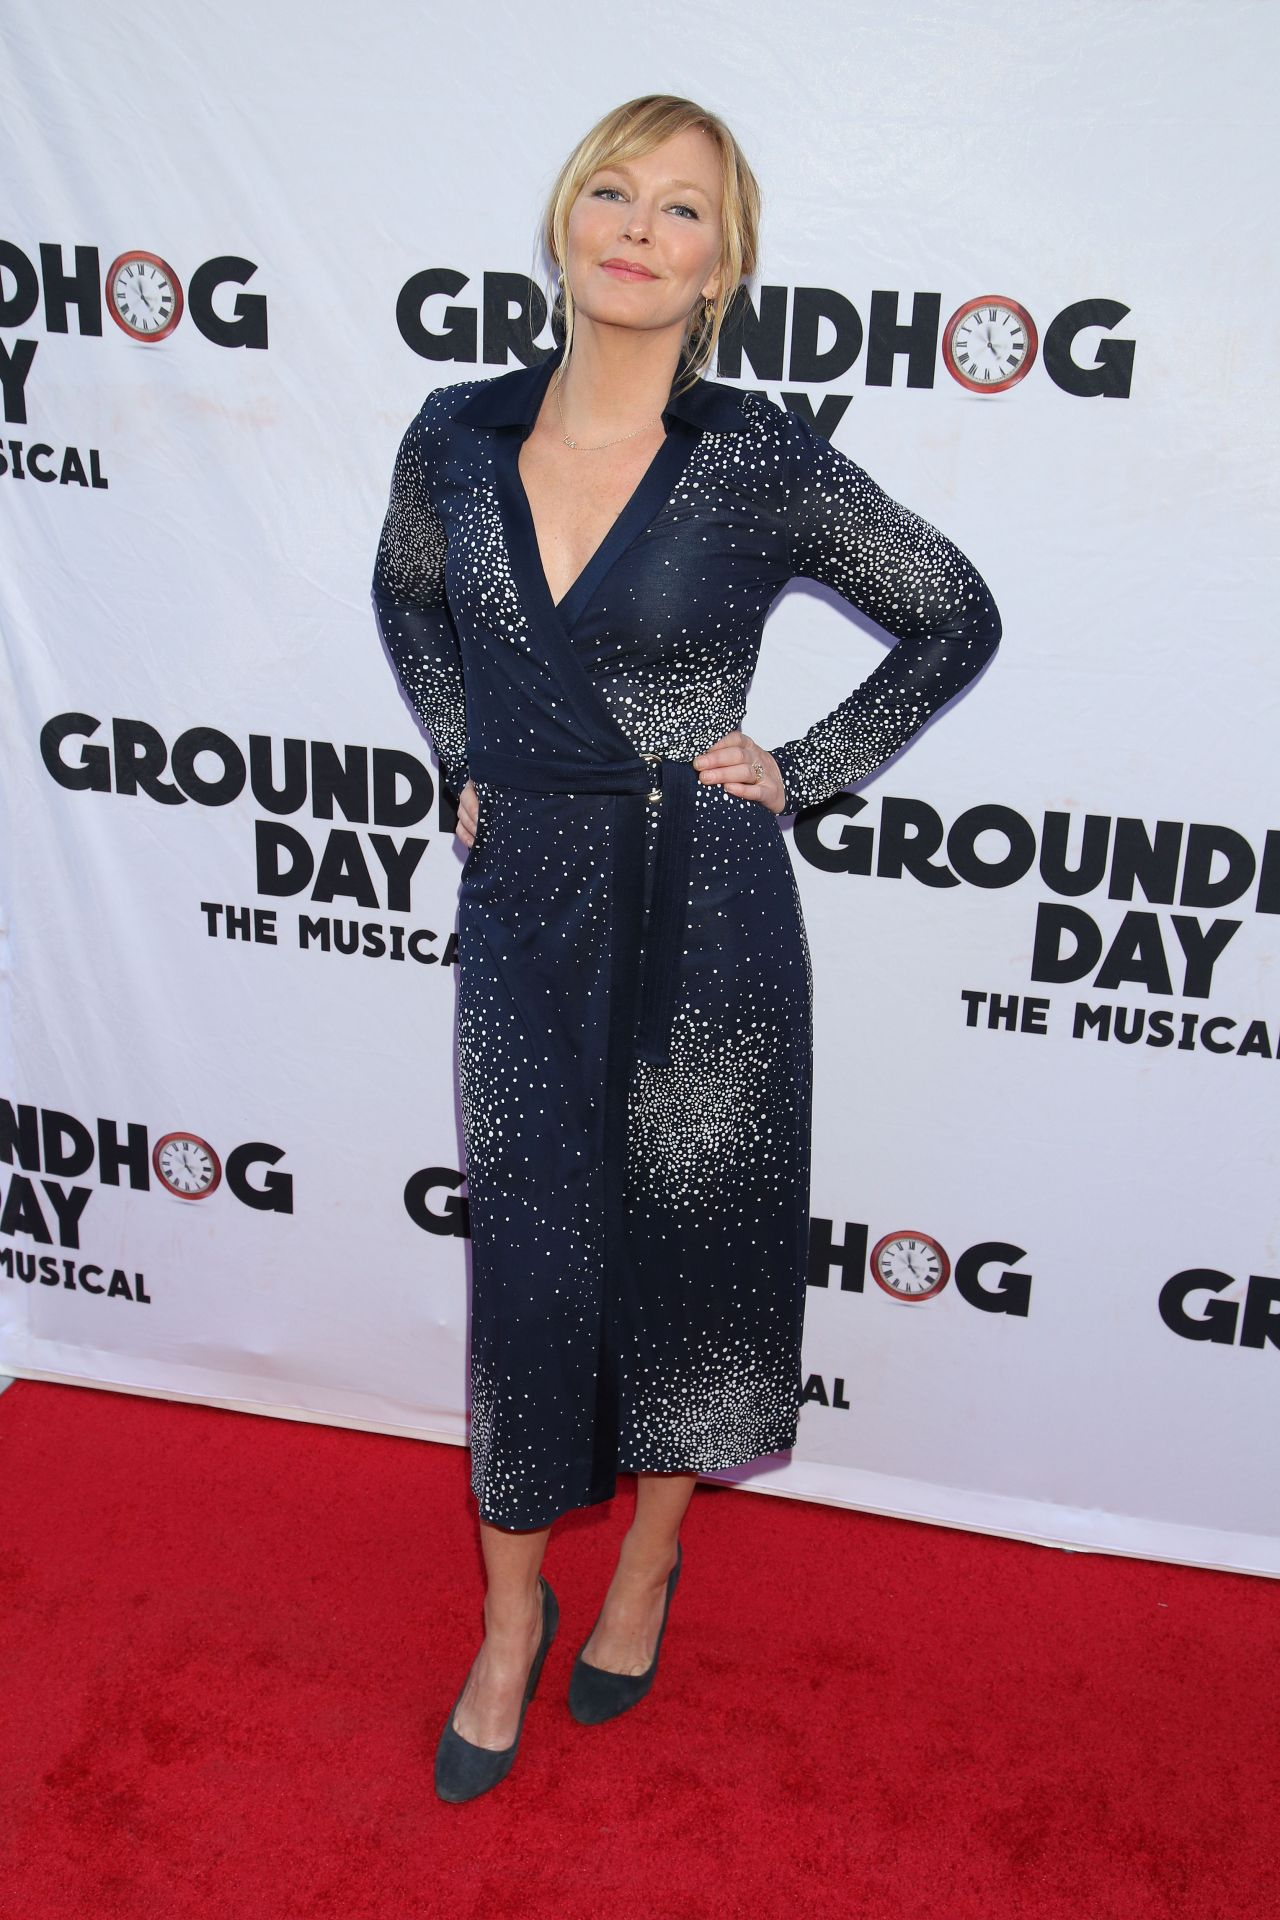 Kelli Giddish Groundhog Day The Musical In New York 4